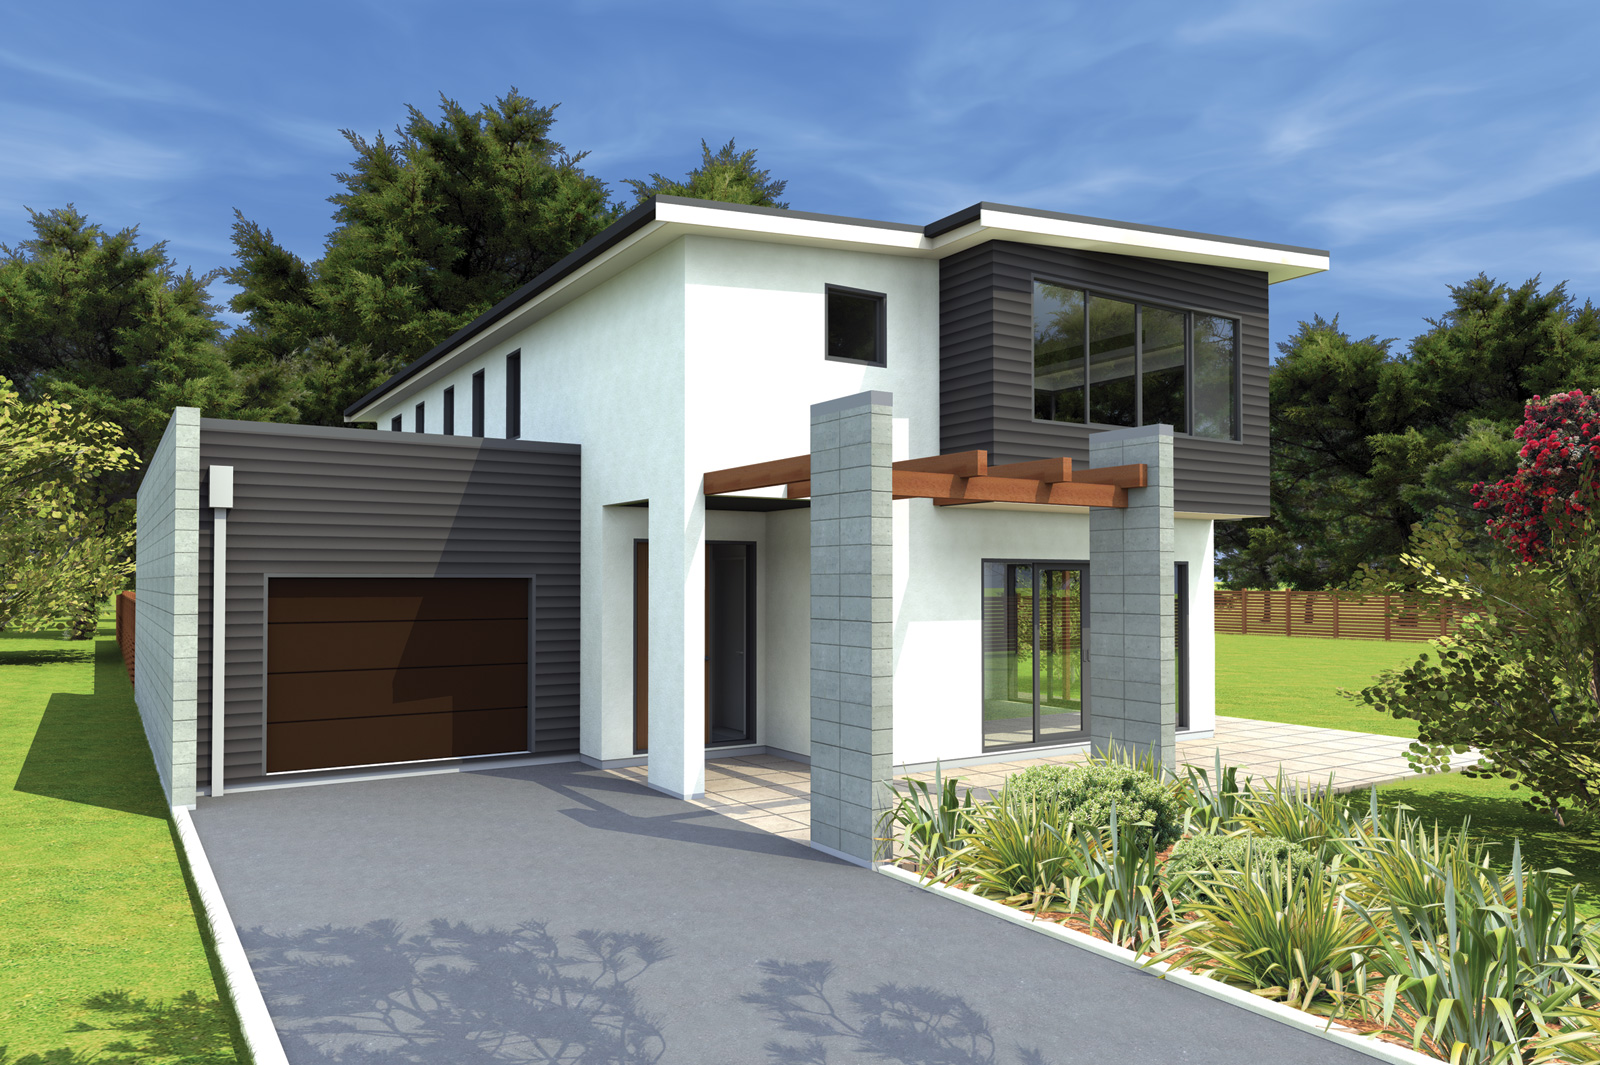 New home designs latest new modern homes designs new Contemporary house designs uk